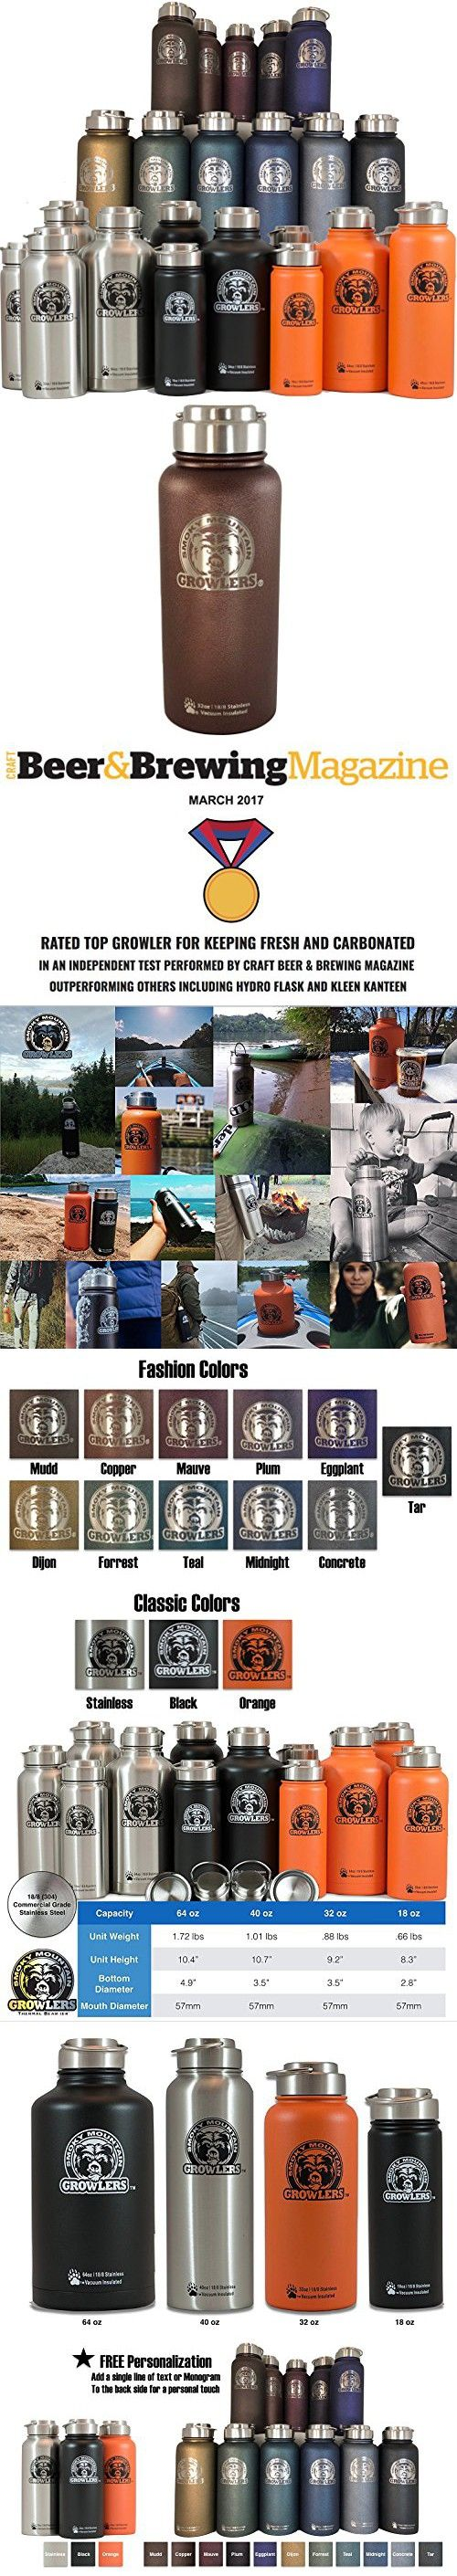 Smoky Mountain Growlers Insulated Stainless Steel All-in-one 32 oz Water Bottle, Thermos, and Wine or Beer Growler with Stainless Steel Lid (Copper)